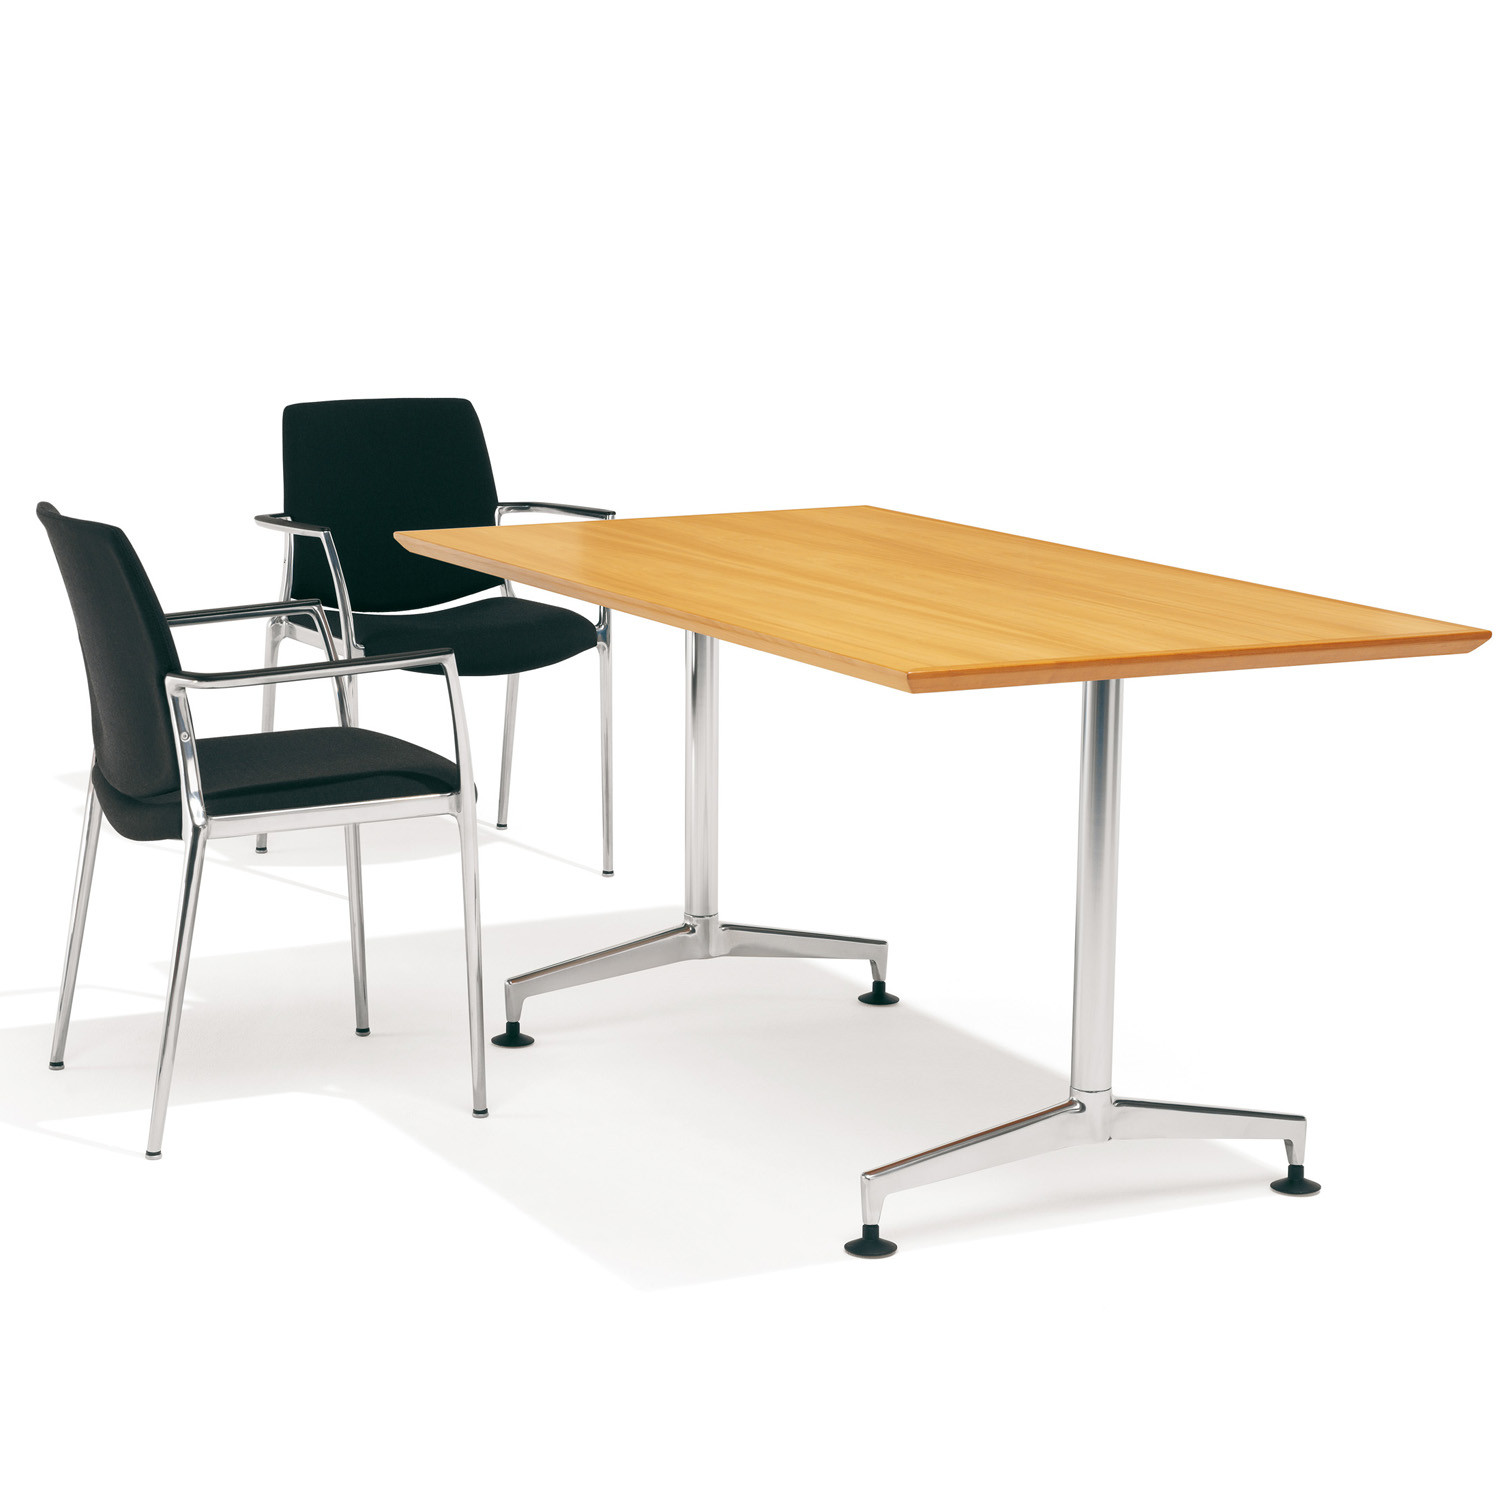 8400 Ona Standalone Rectangular Meeting Table